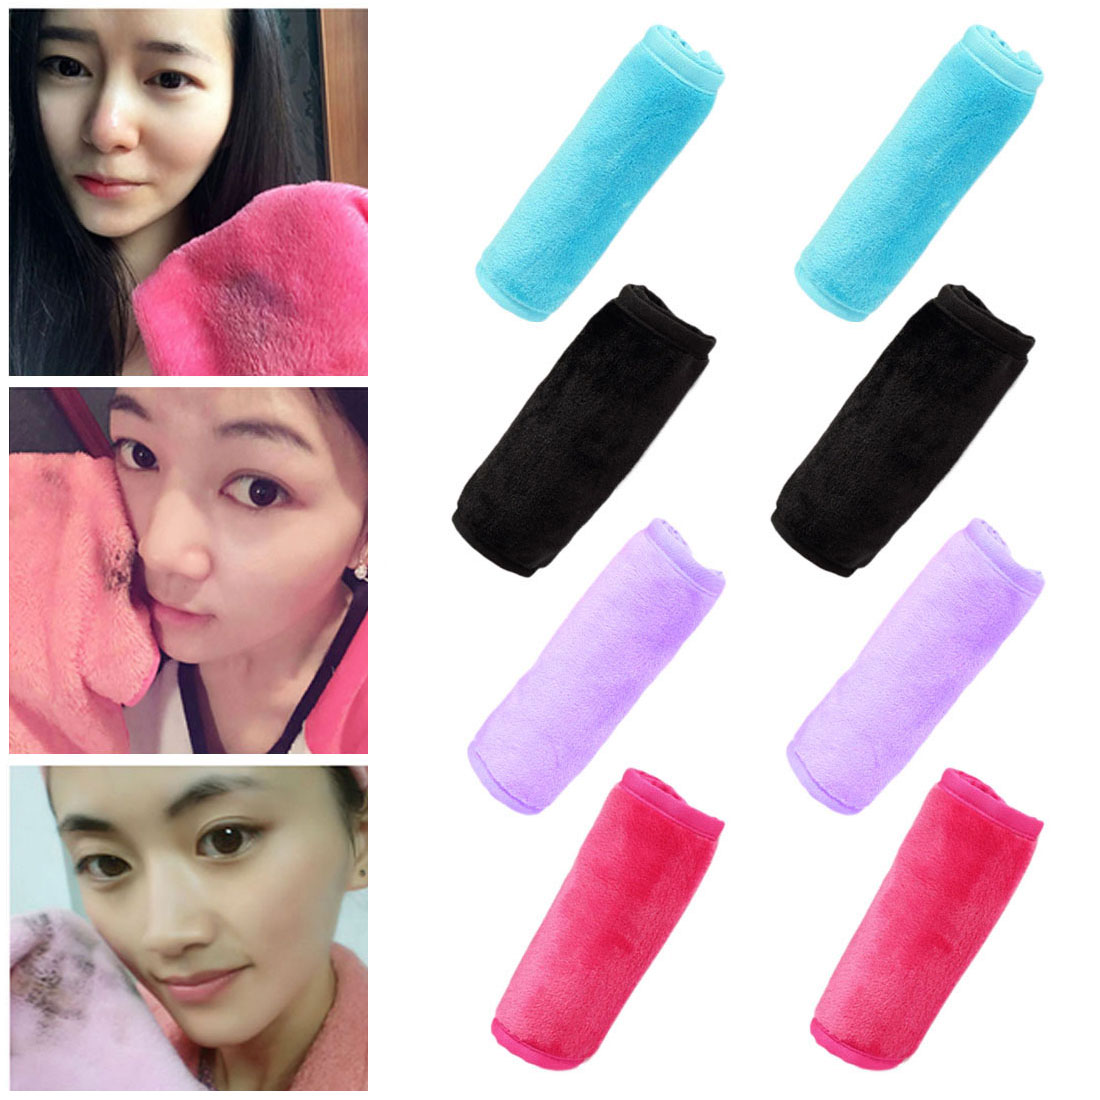 Reusable Microfiber Facial Cleansing Towels Cloth Makeup Remover Cleansing Beauty Wash Tools